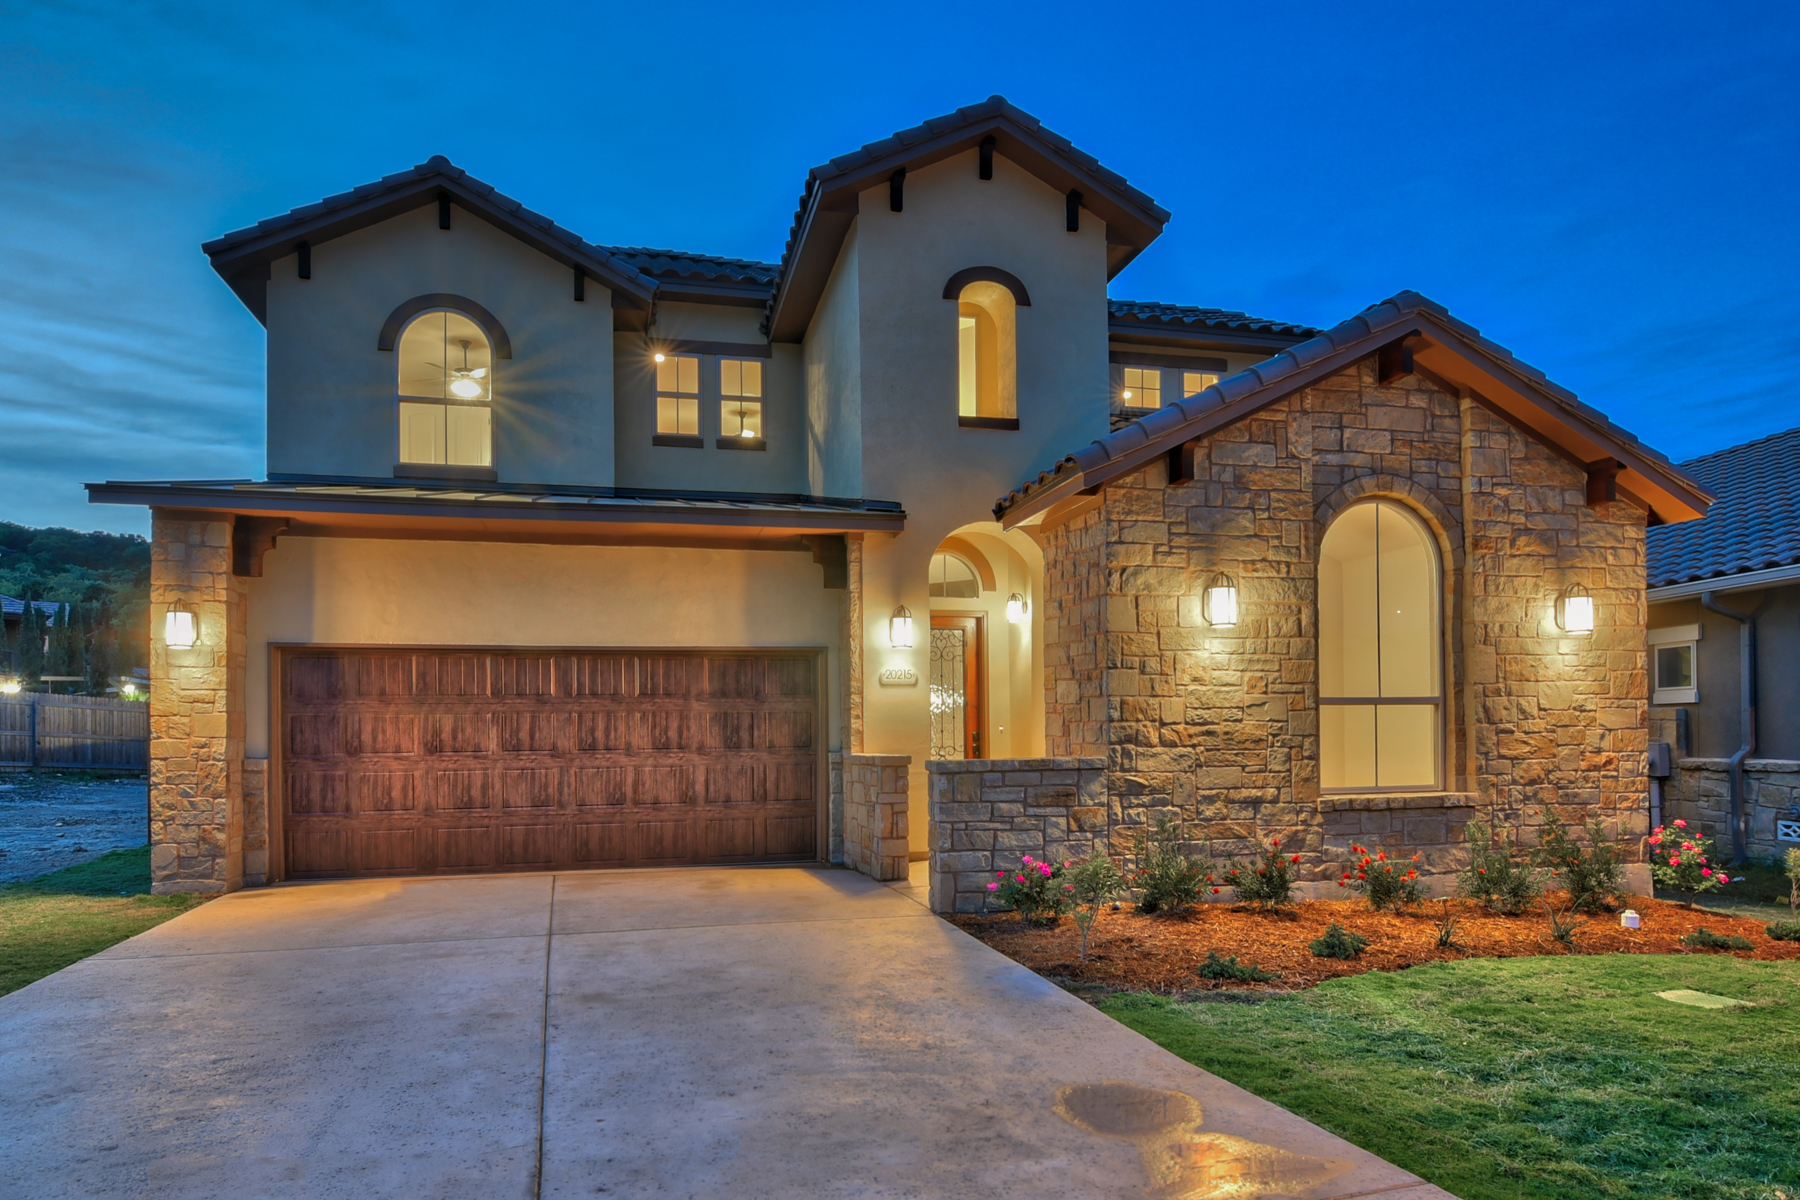 Single Family Home for Sale at Beautiful Gem in Cresta Bella 20215 Bella Glade San Antonio, Texas, 78256 United States